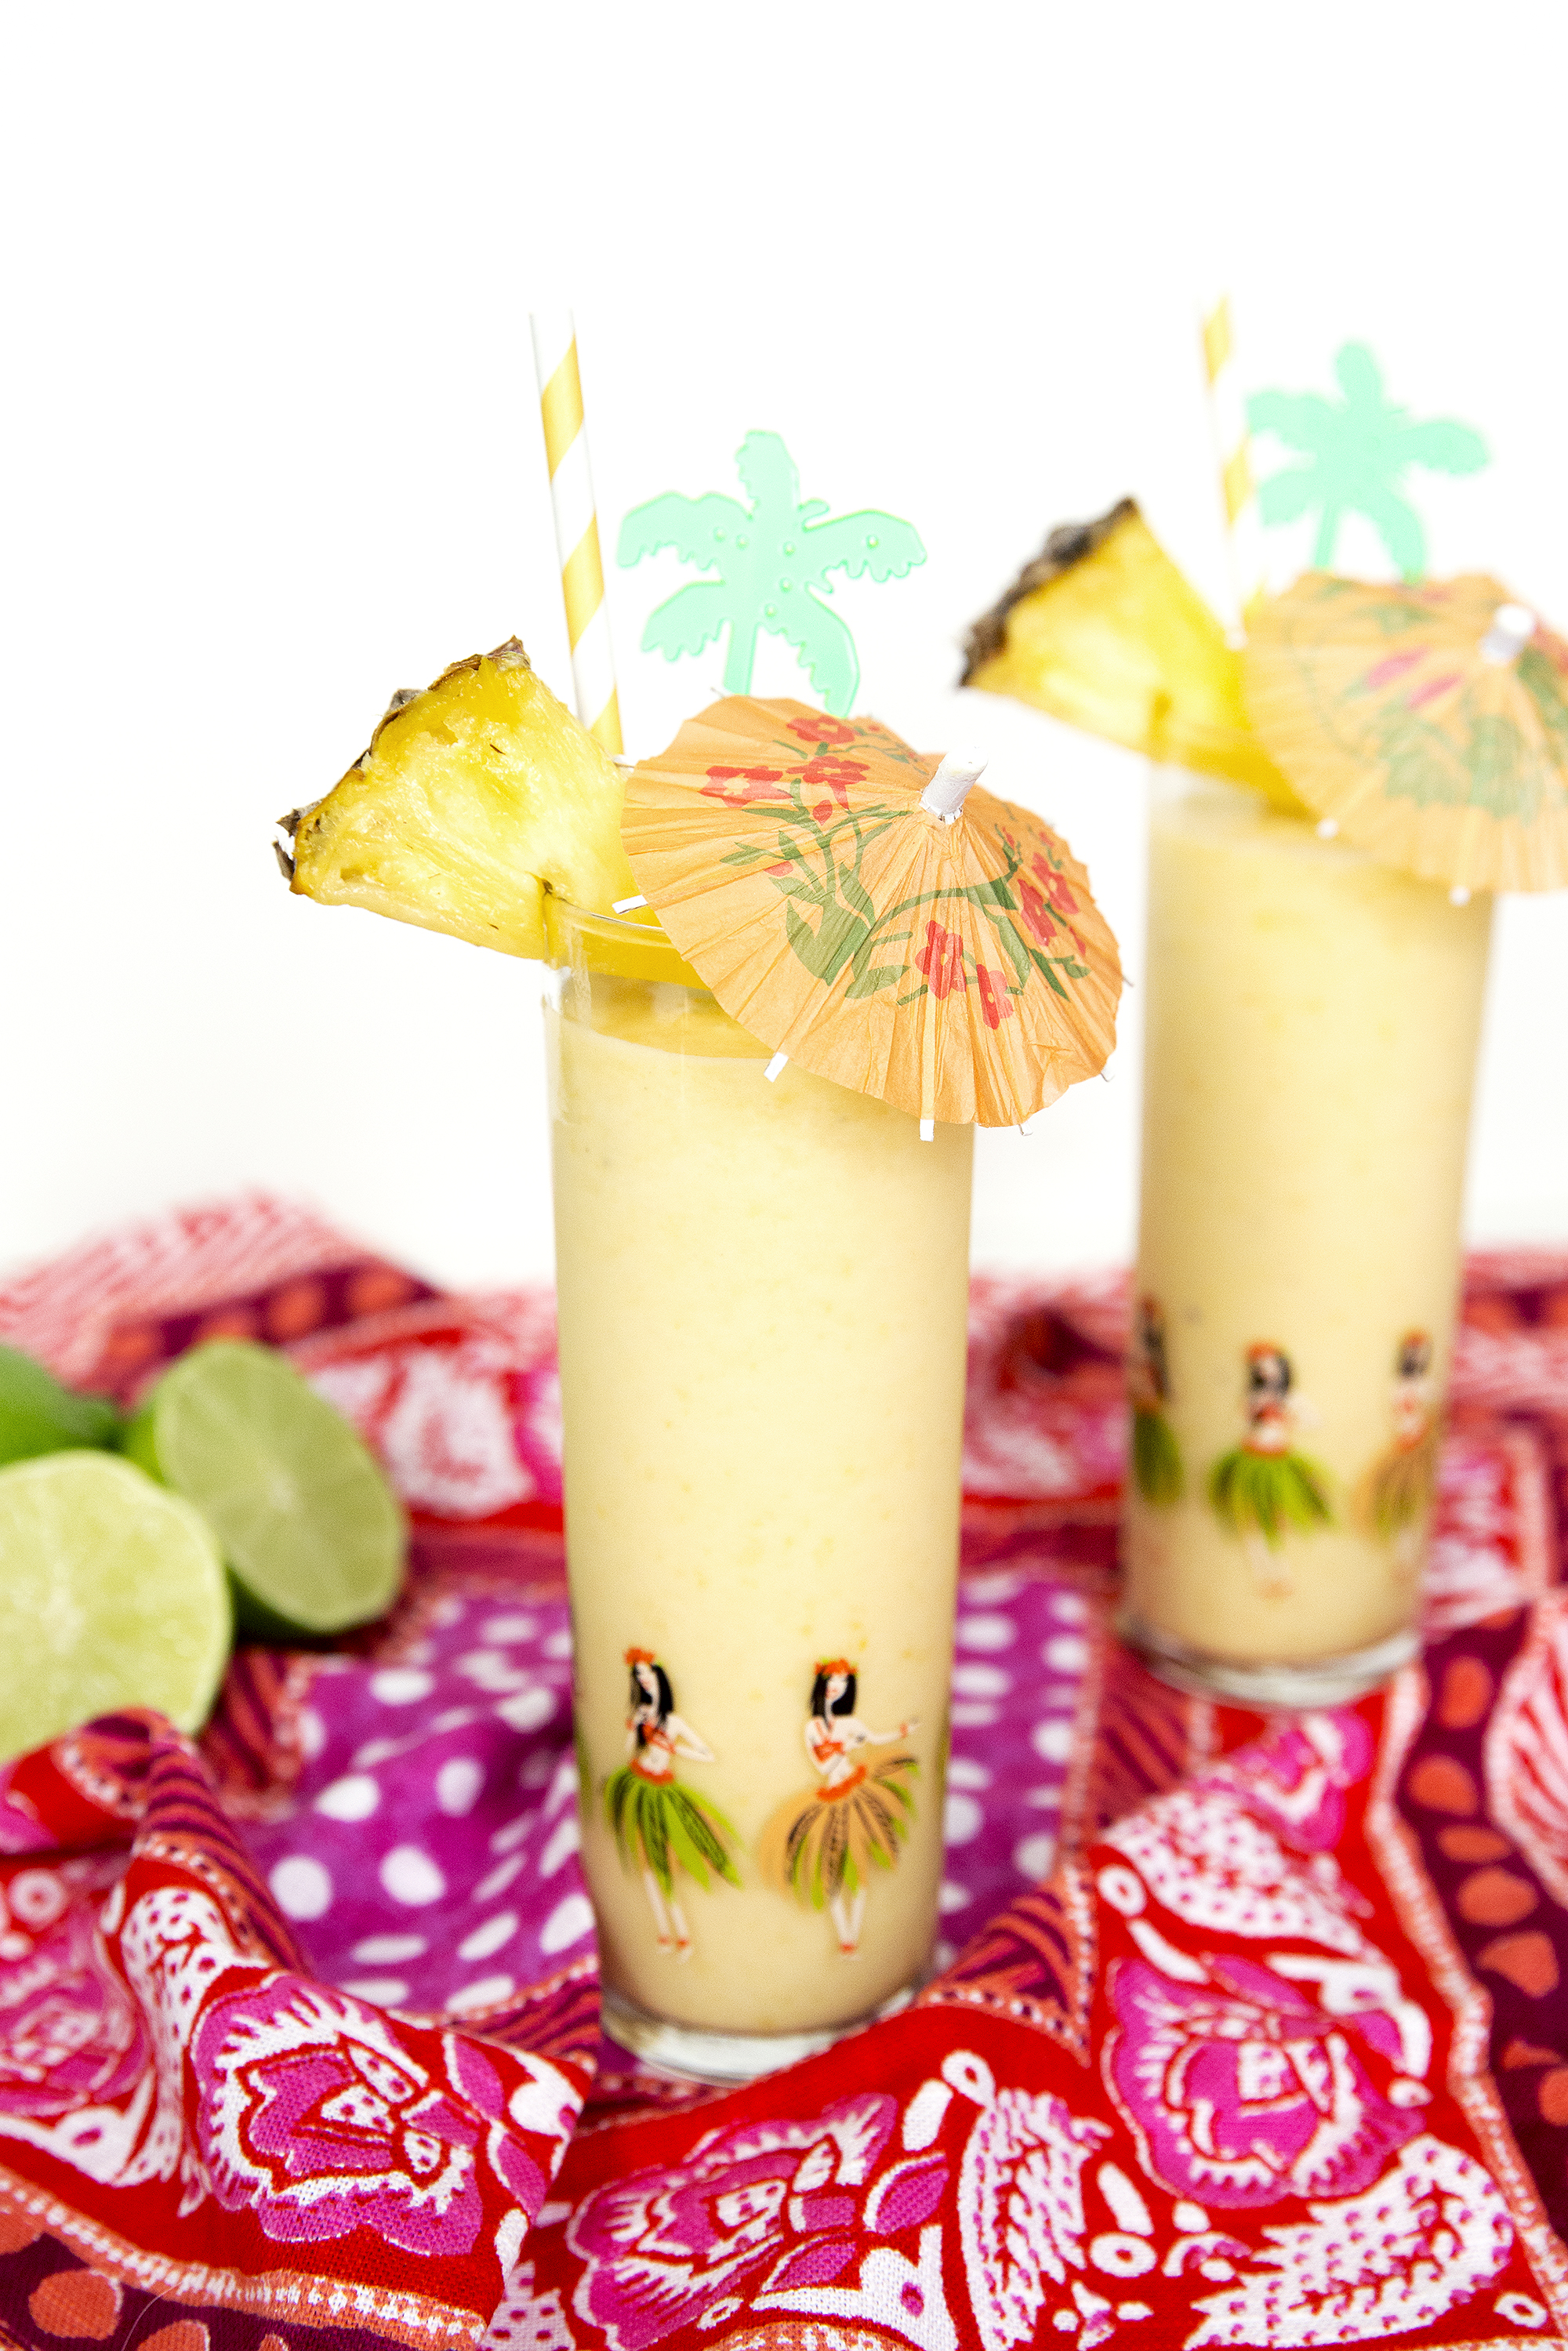 Throw a little mango into your traditional Pina Colada! Get the recipe for this Mango Colada: unusuallylovely.com